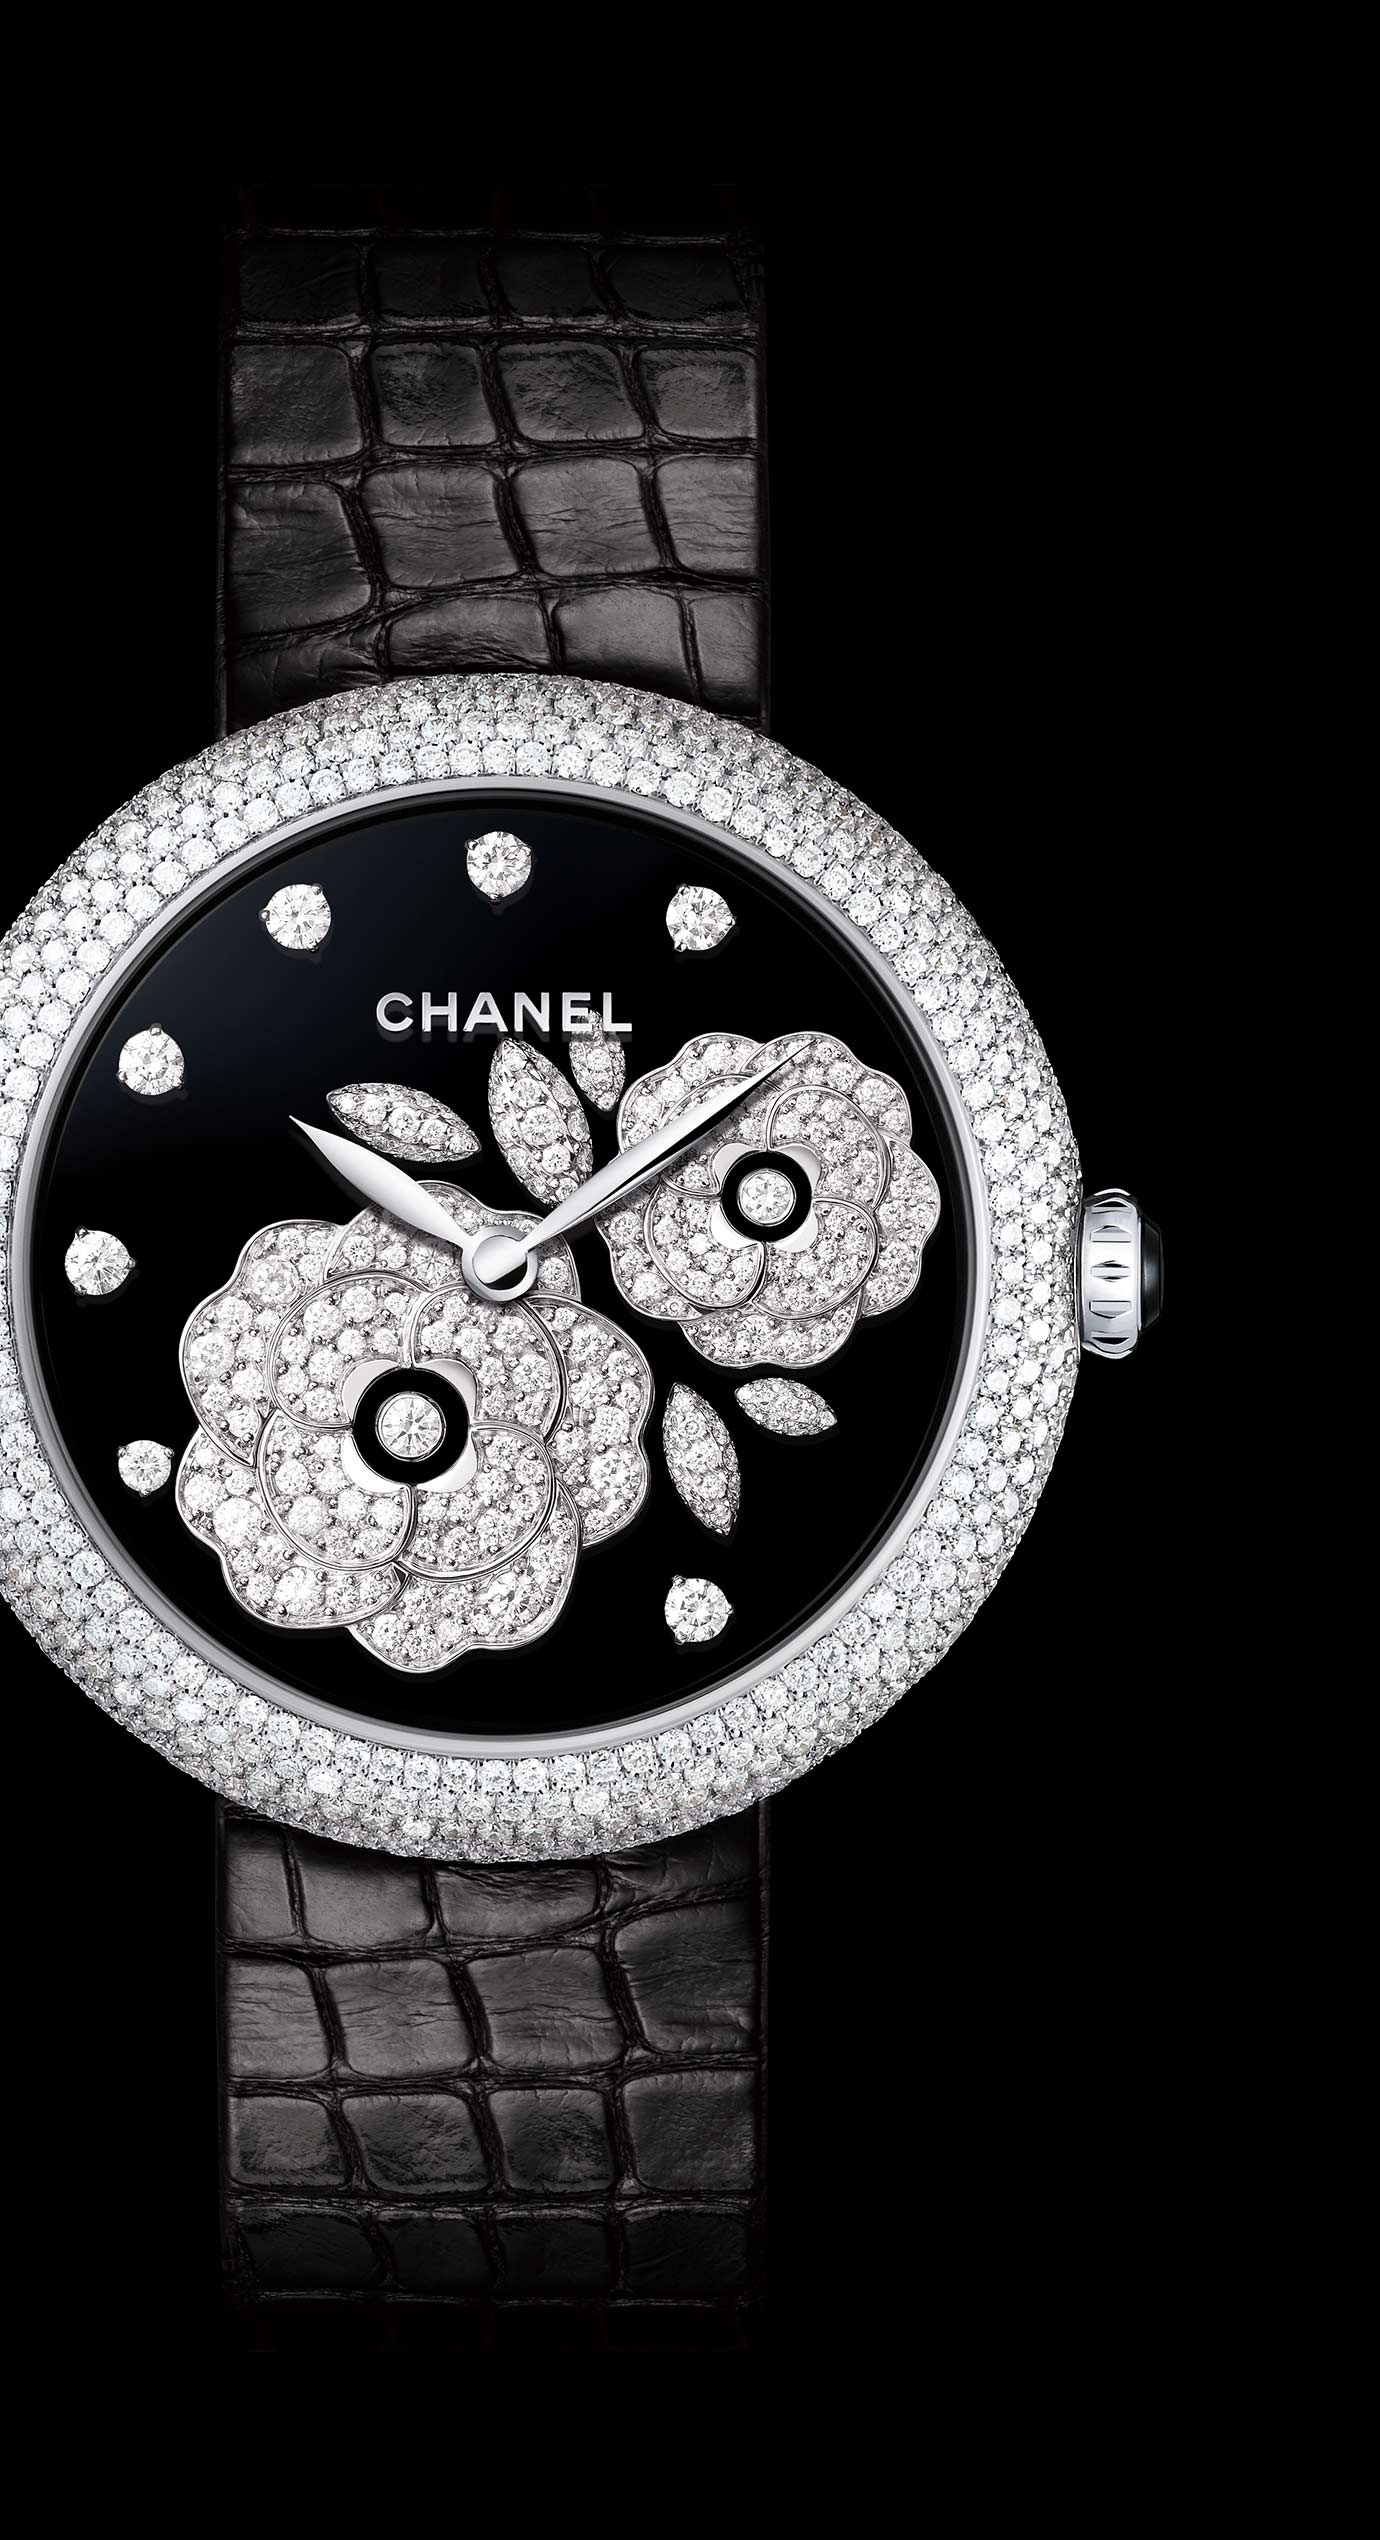 Mademoiselle Privé Bouton de Camélia Jewelry watch - Grand Feu black enamel and diamonds - Enlarged view